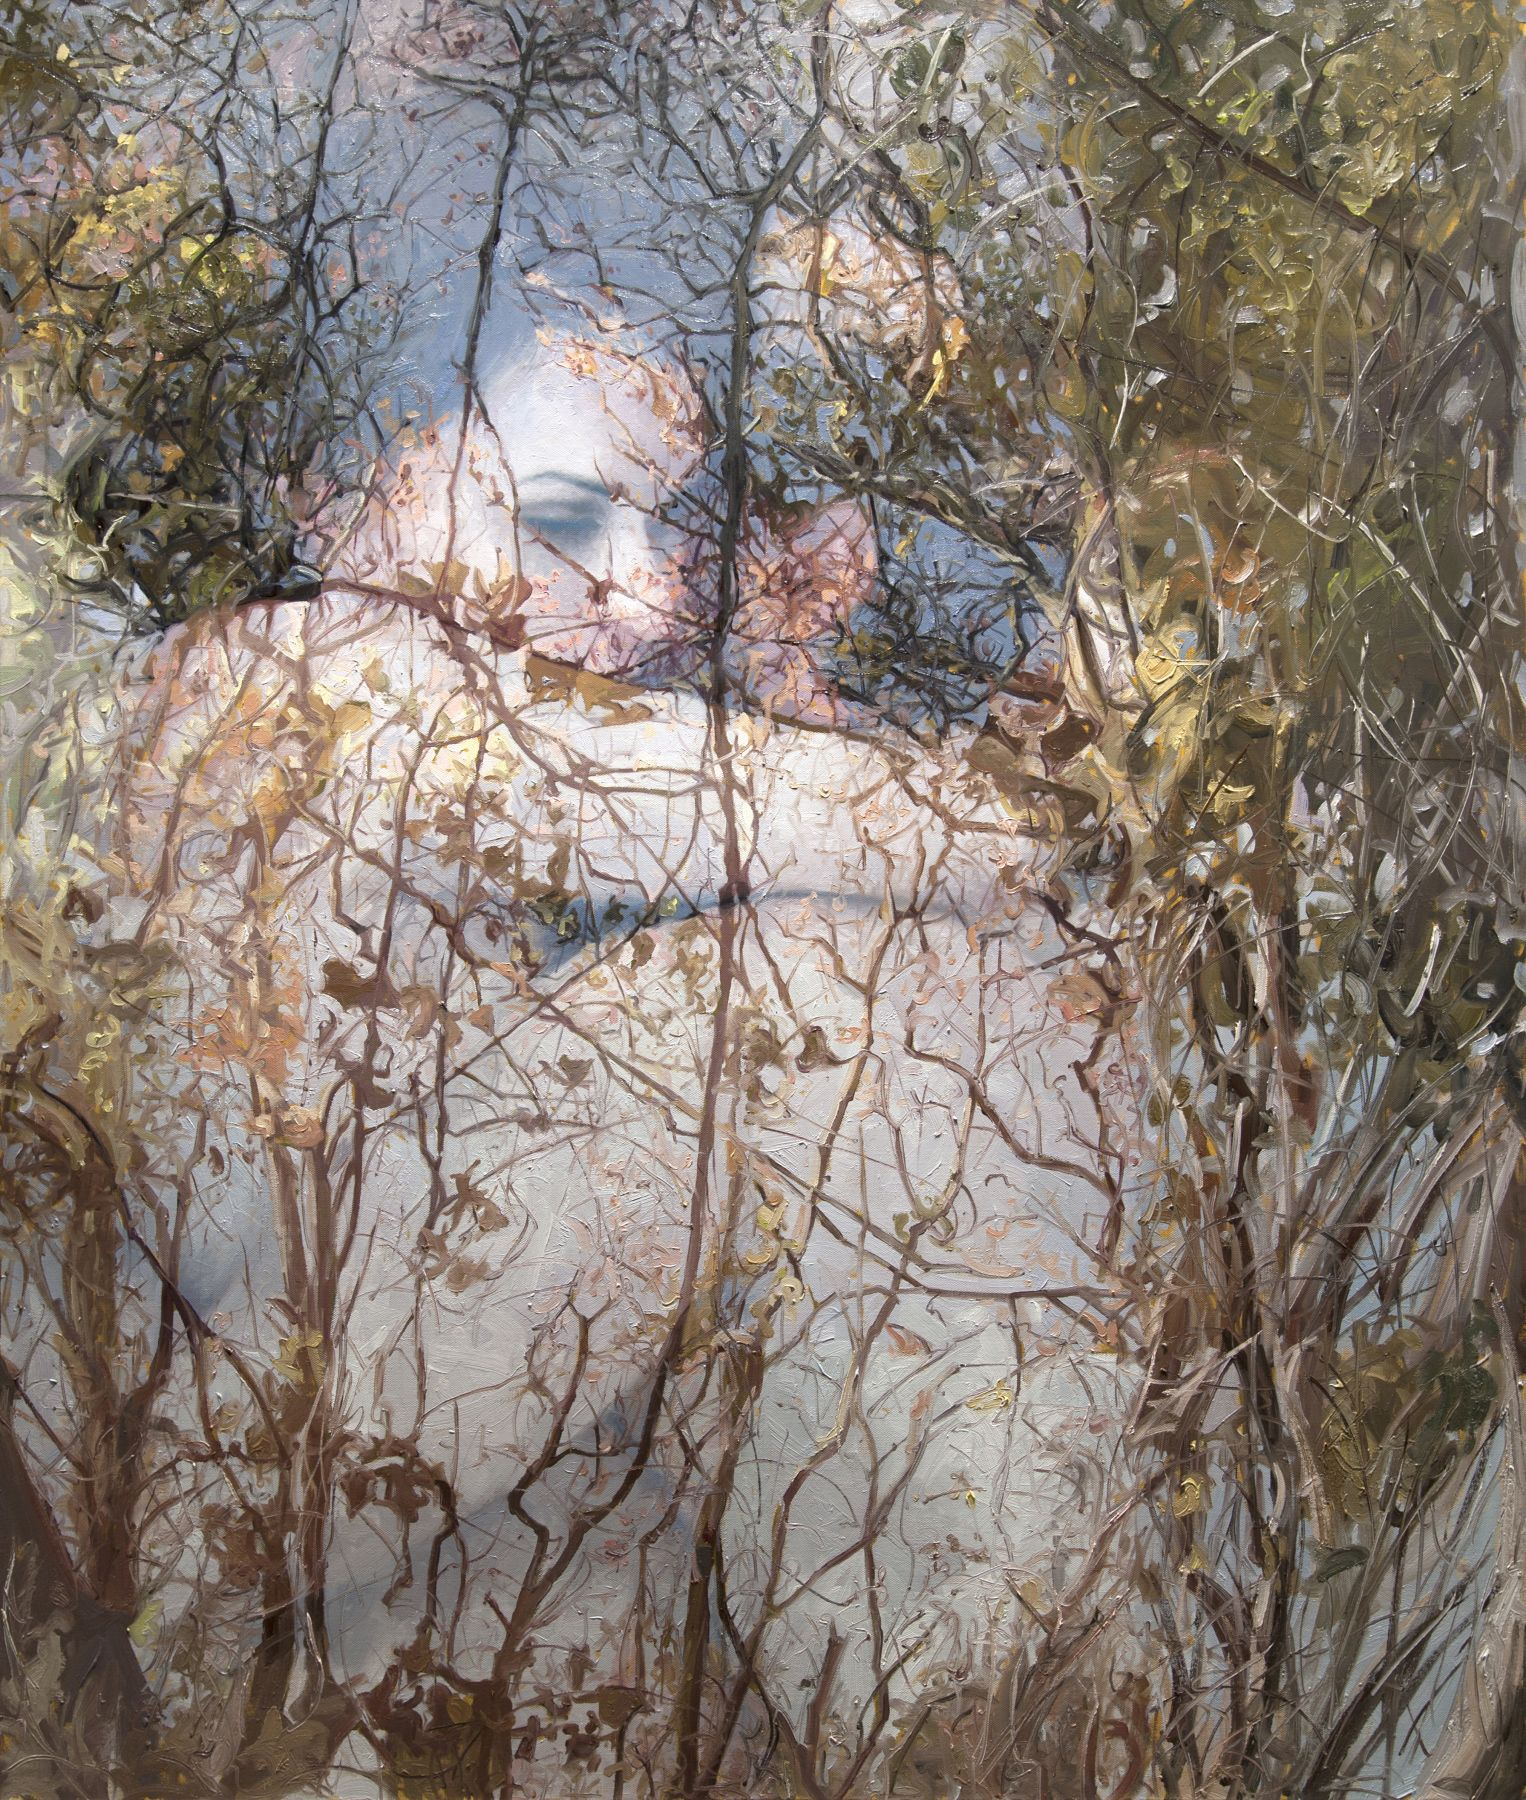 alyssa monks, Impermanence (SOLD), 2015, oil on linen, 66 x 56 inches